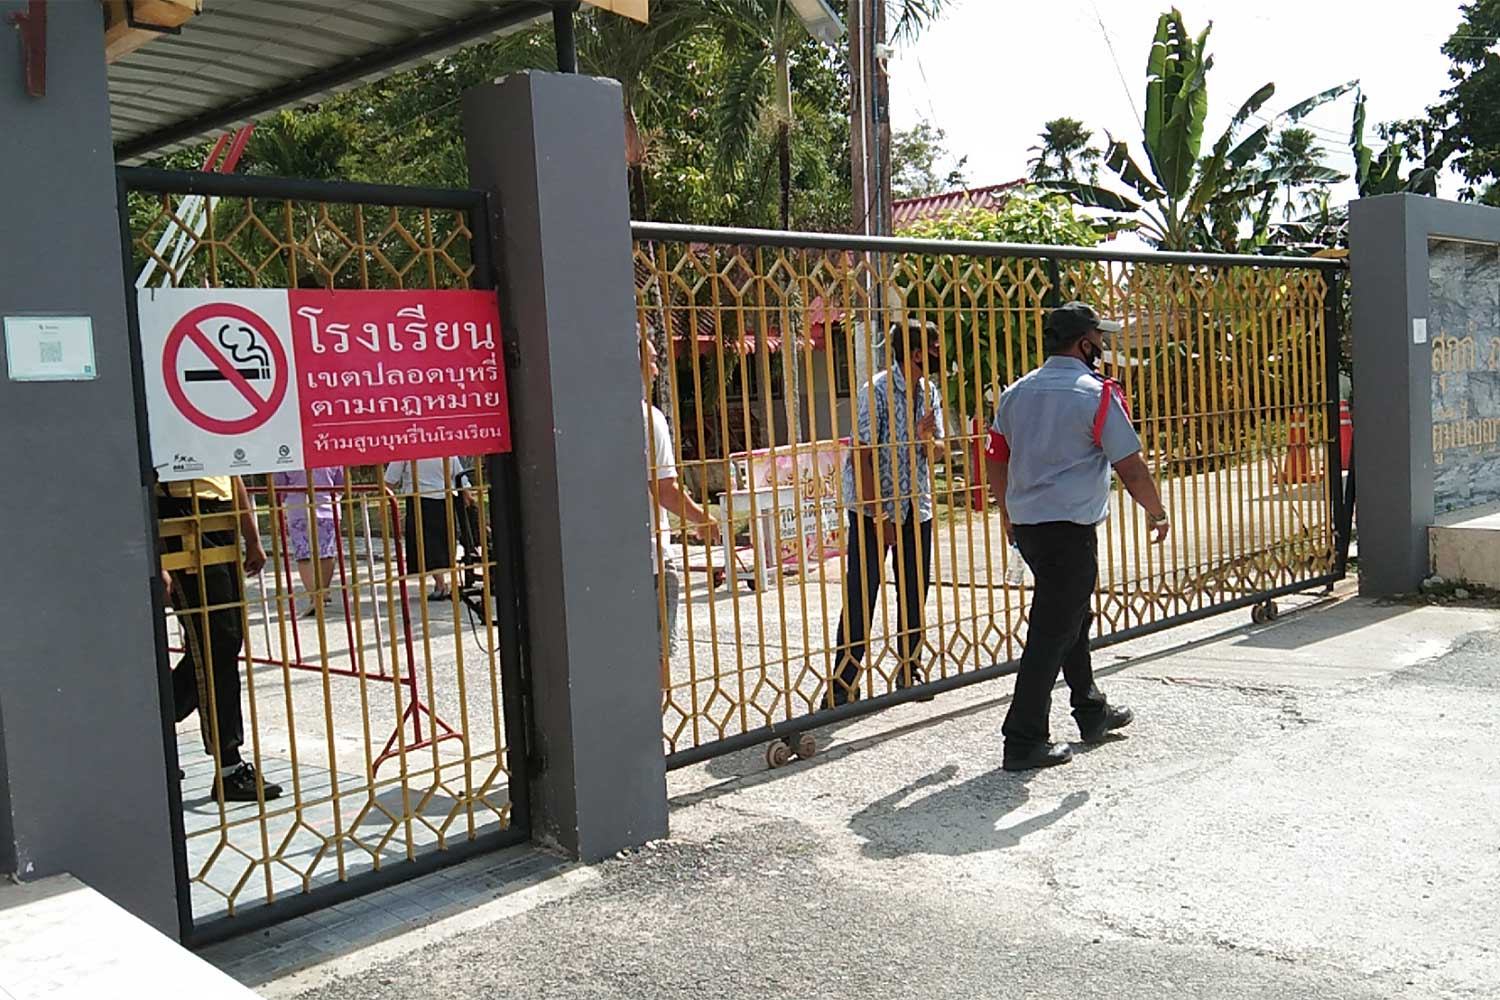 The gates were firmly shut on Friday at the school in Thepha district of Songkhla where the director faces charges of raping a student and carrying a gun during morning assembly. (Photo: Assawin Pakkawan)